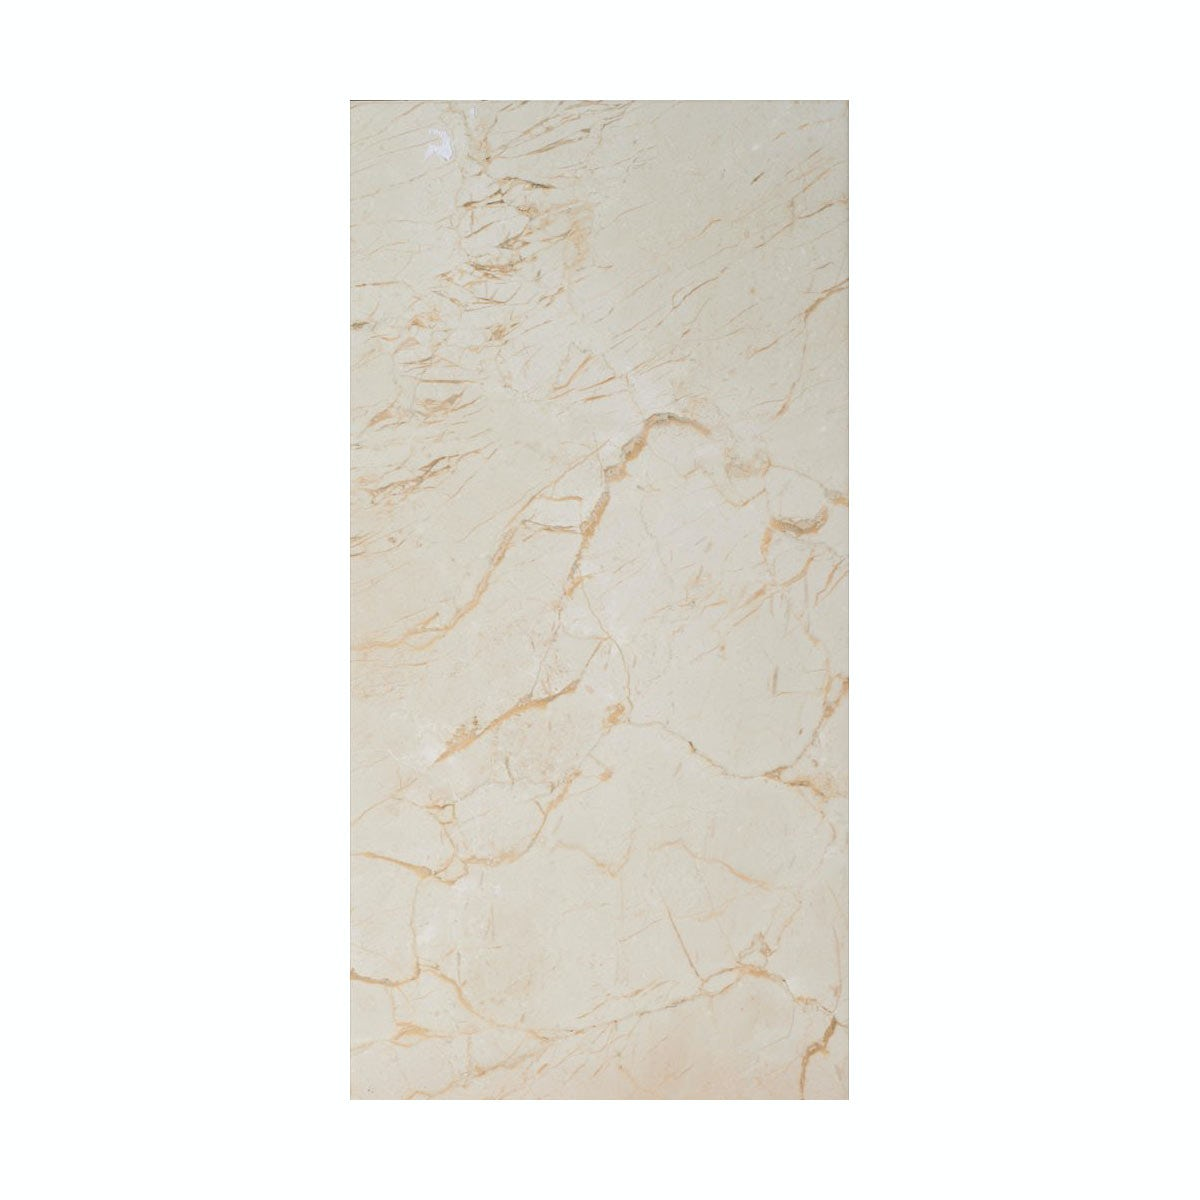 cut out of rectangular praline gloss tile with marble effect